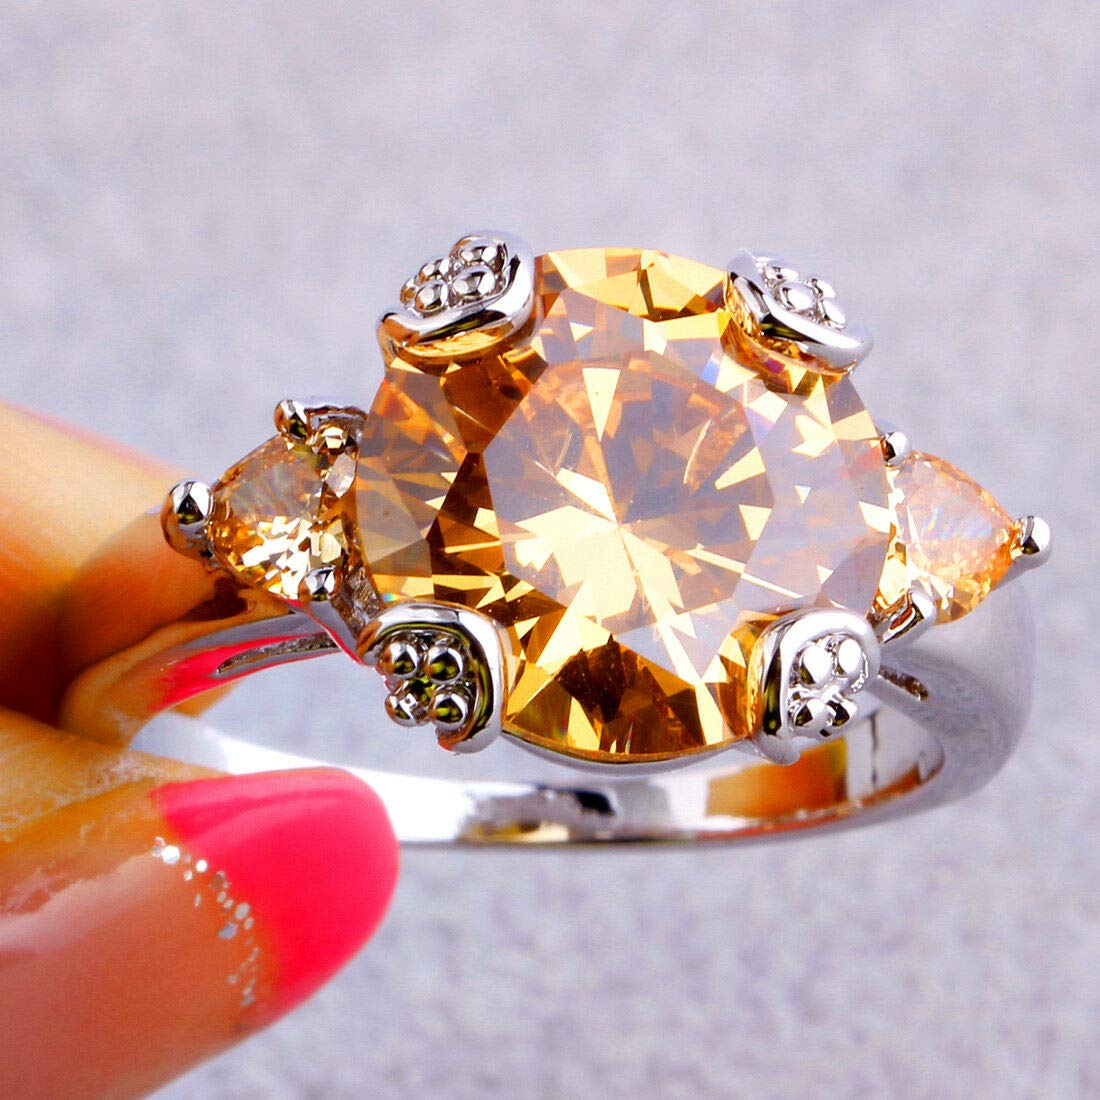 The Sun Jewelry Clearancel Sale Dainty Round Cut Morganite Gemstone Silver Ring Size 6 7 8 9 10 11